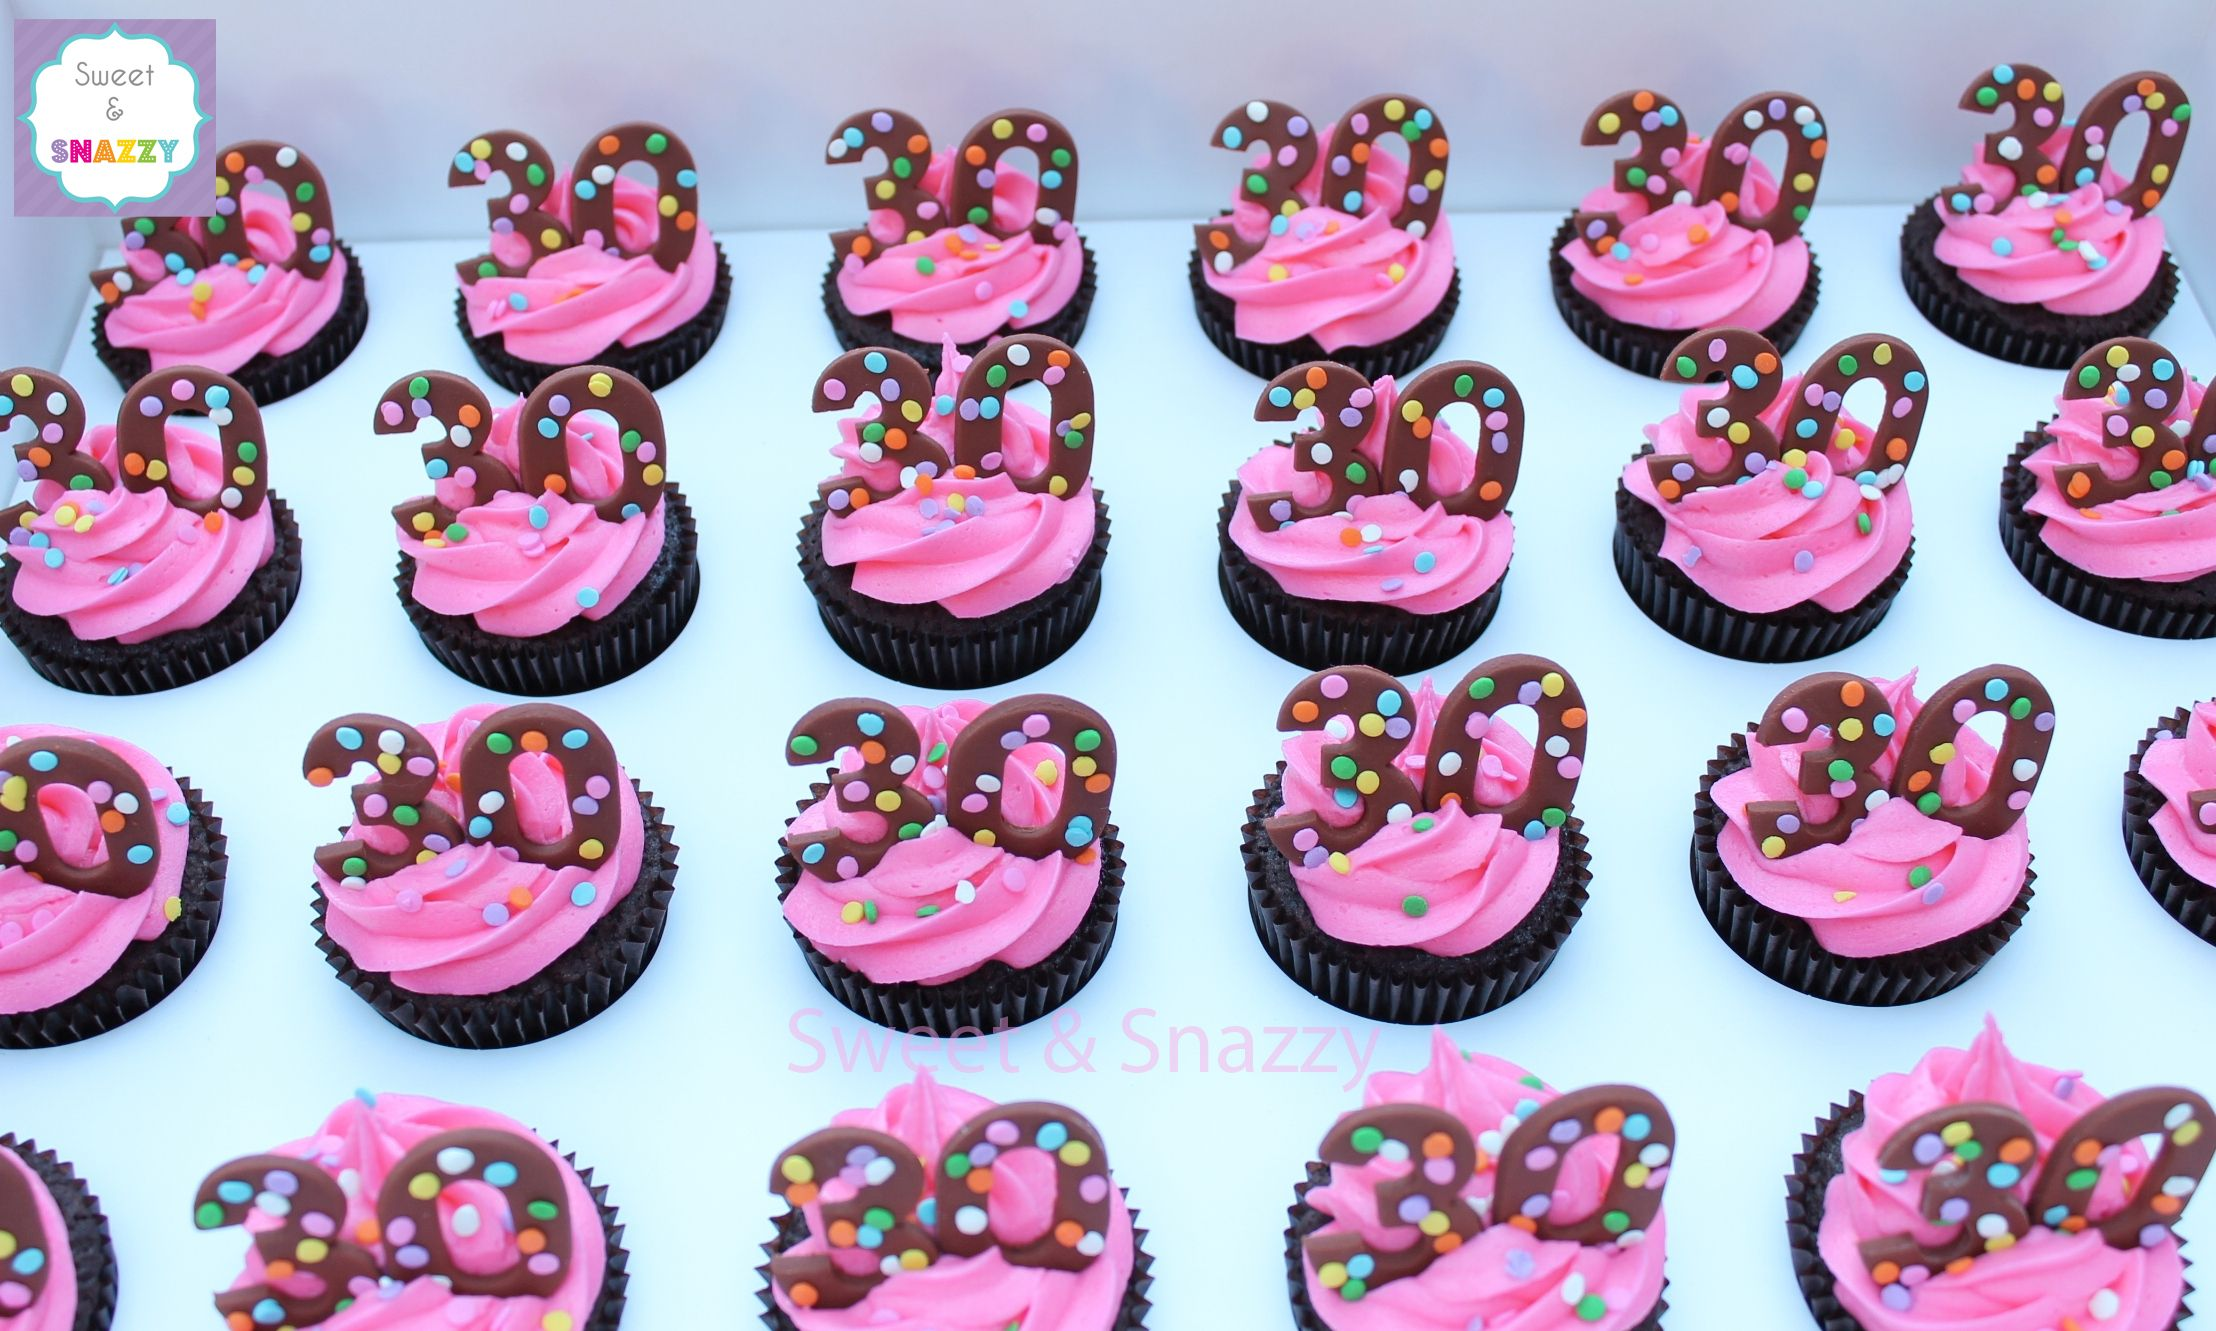 30th birthday cupcakes by sweet snazzy httpswww